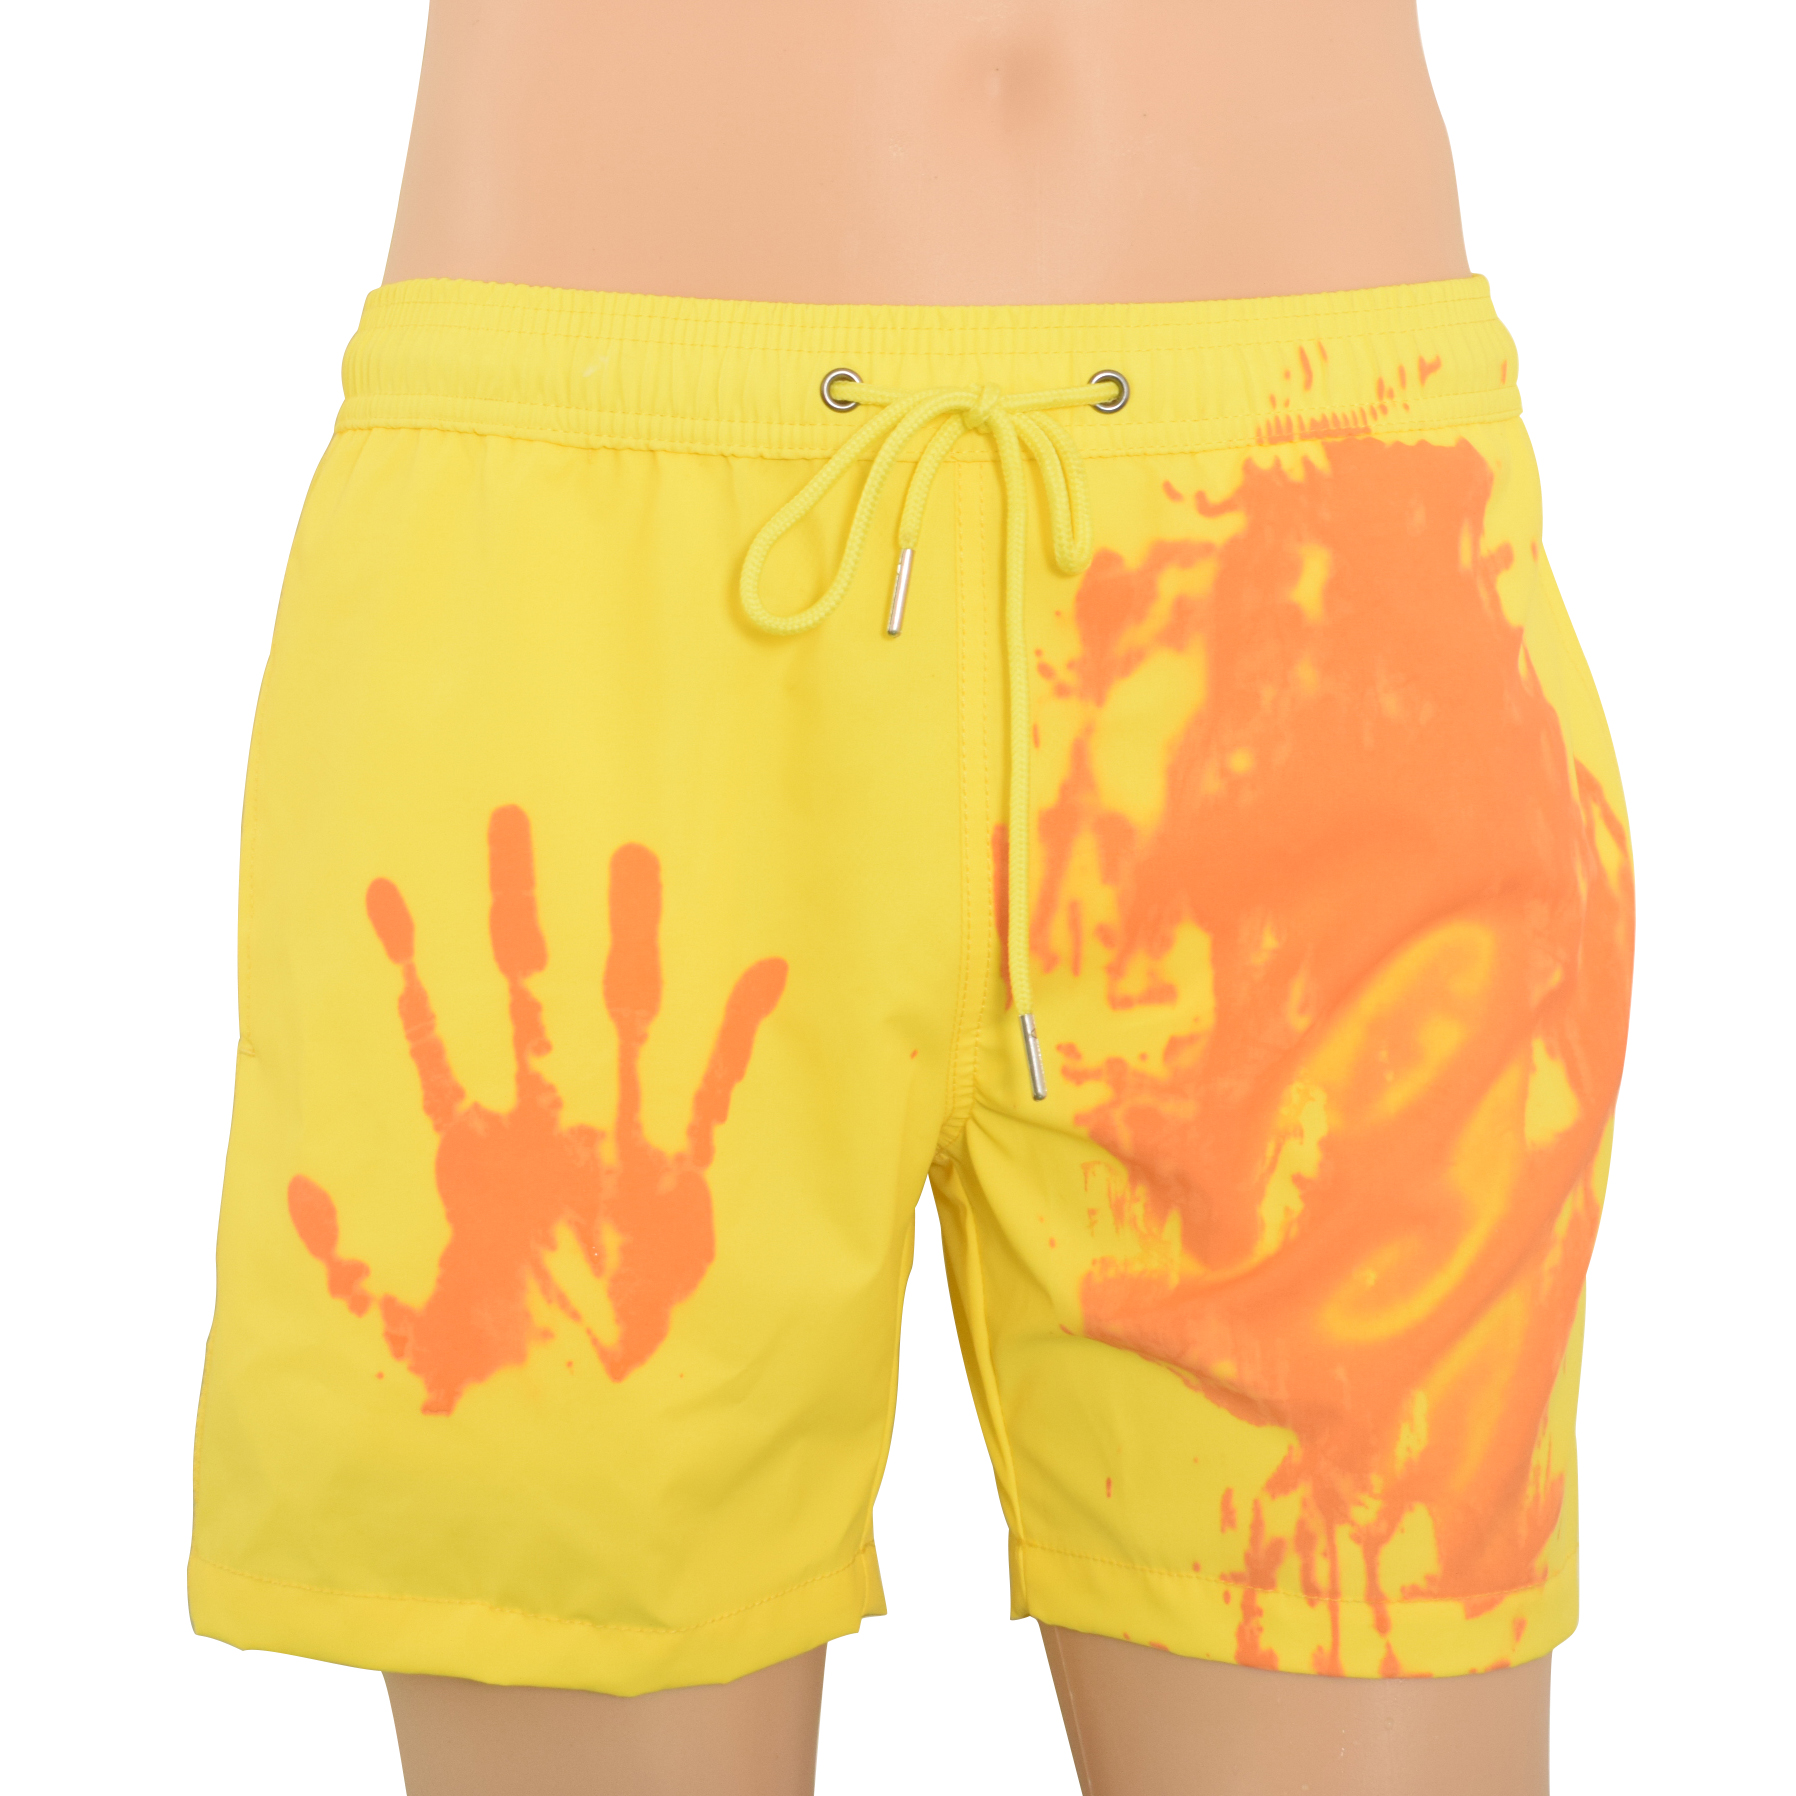 2019 Change Color Man Beach Pant Yellow Change Pink Male Pant Quick-drying with Pocket Male Surfing Shorts GYM Swimwear